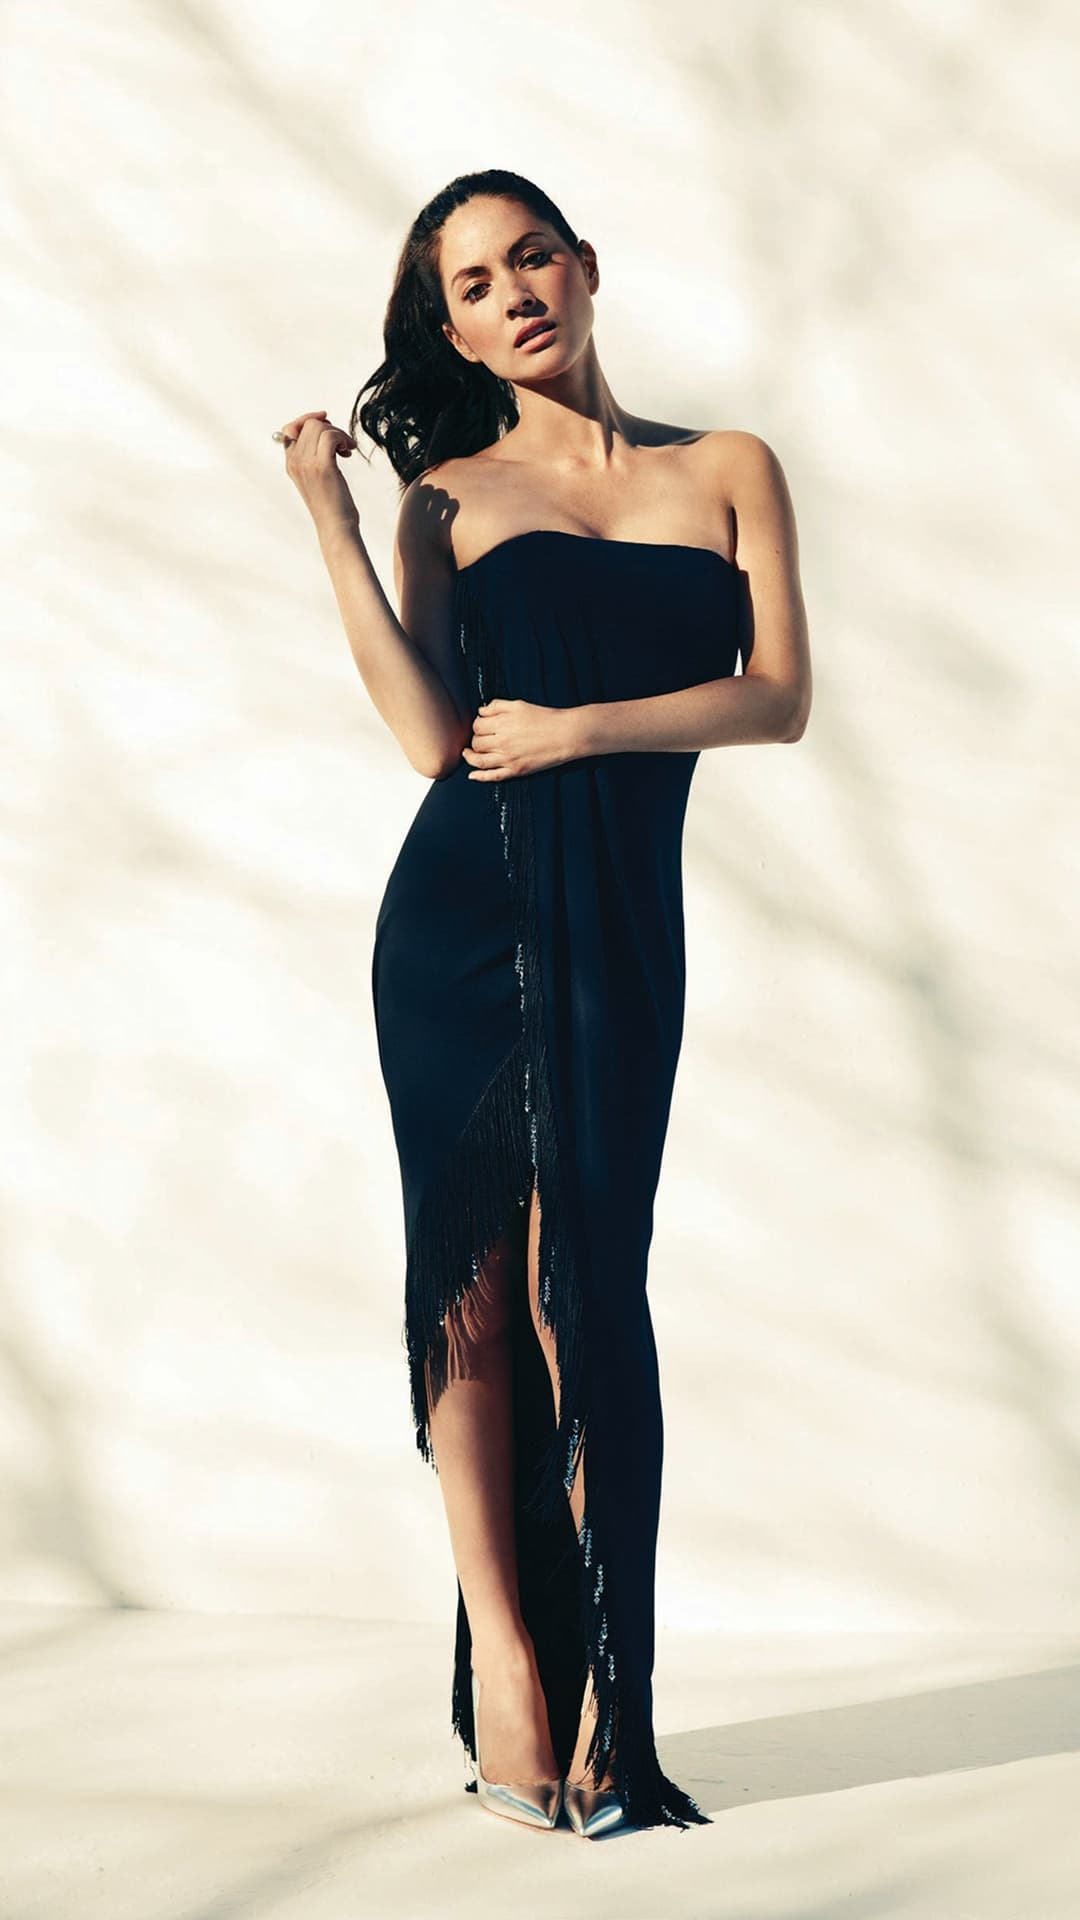 Paris Iphone Wallpaper Hd Olivia Munn Wallpapers Pictures Images Hd Download For